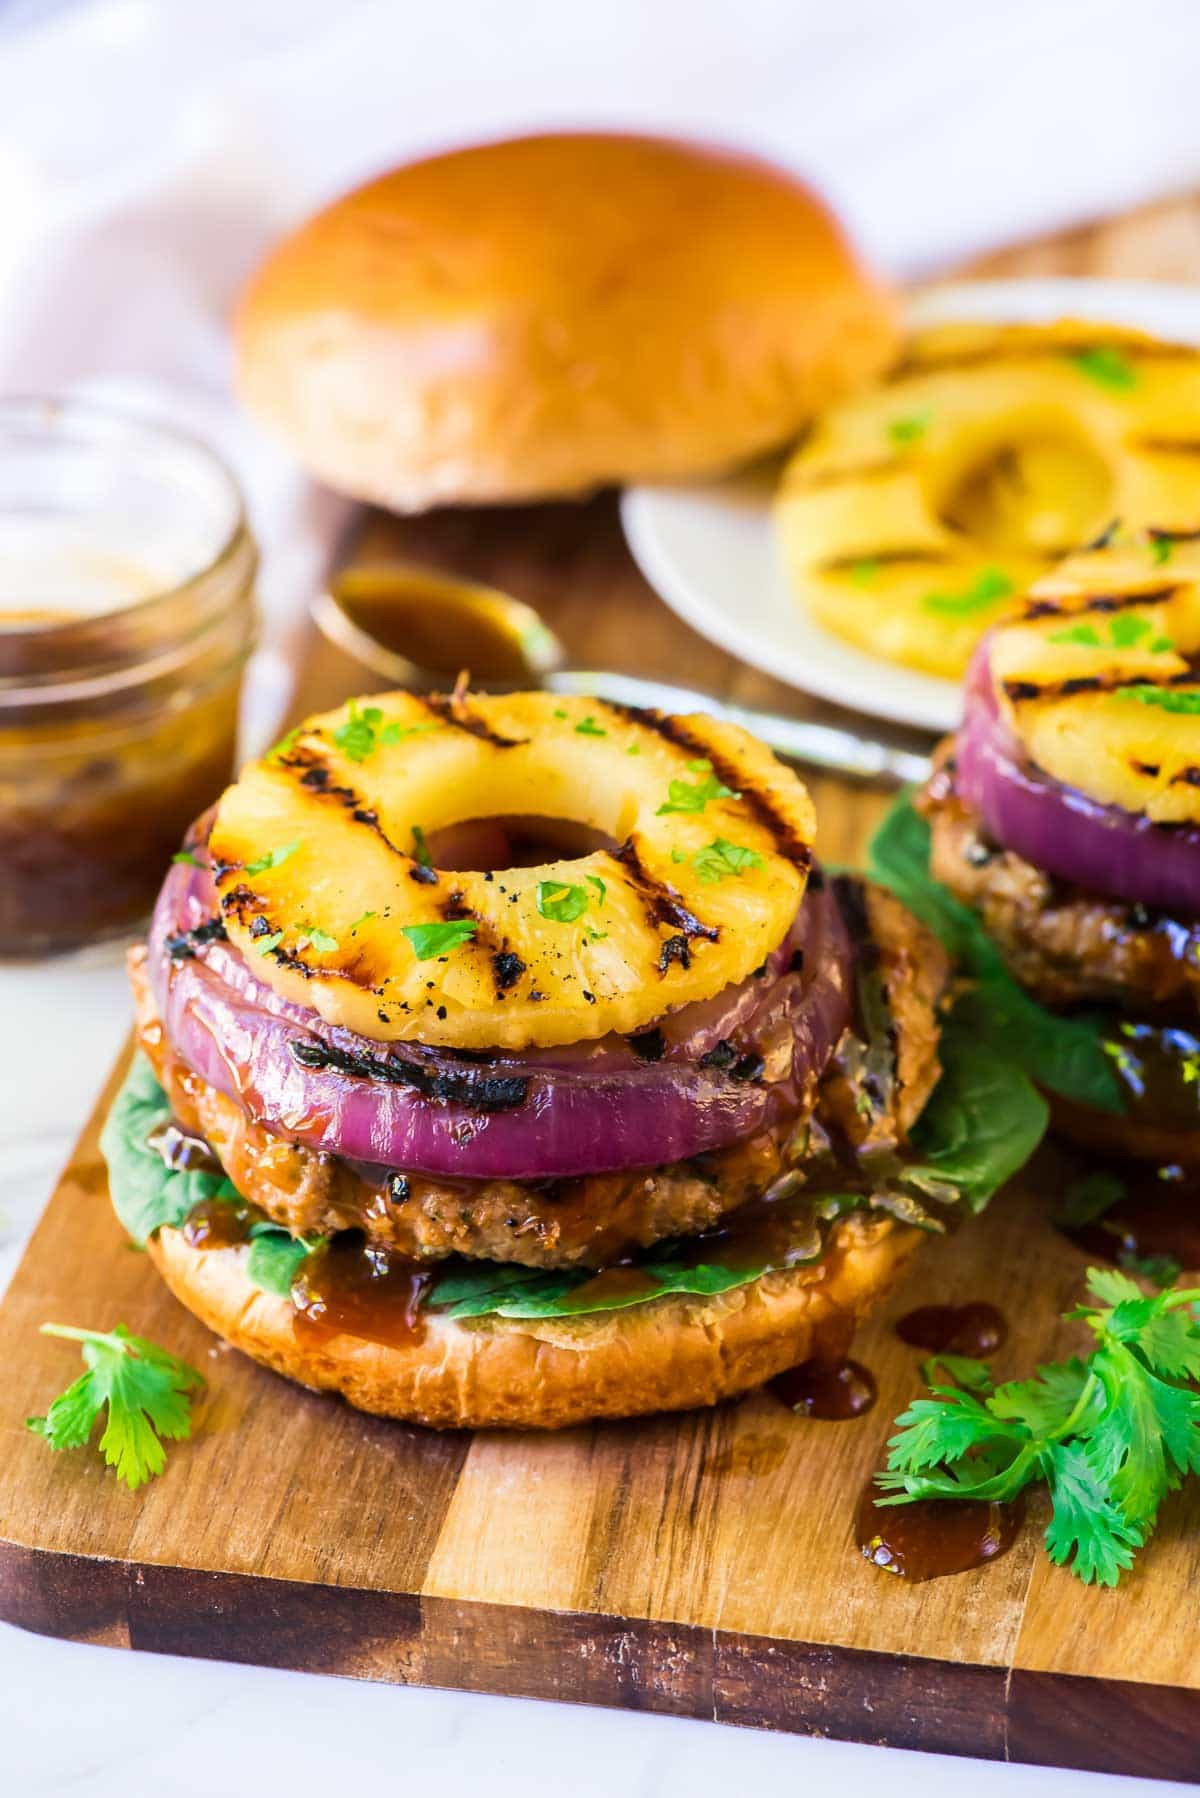 Teriyaki burger with red onion slices and grilled pineapple.